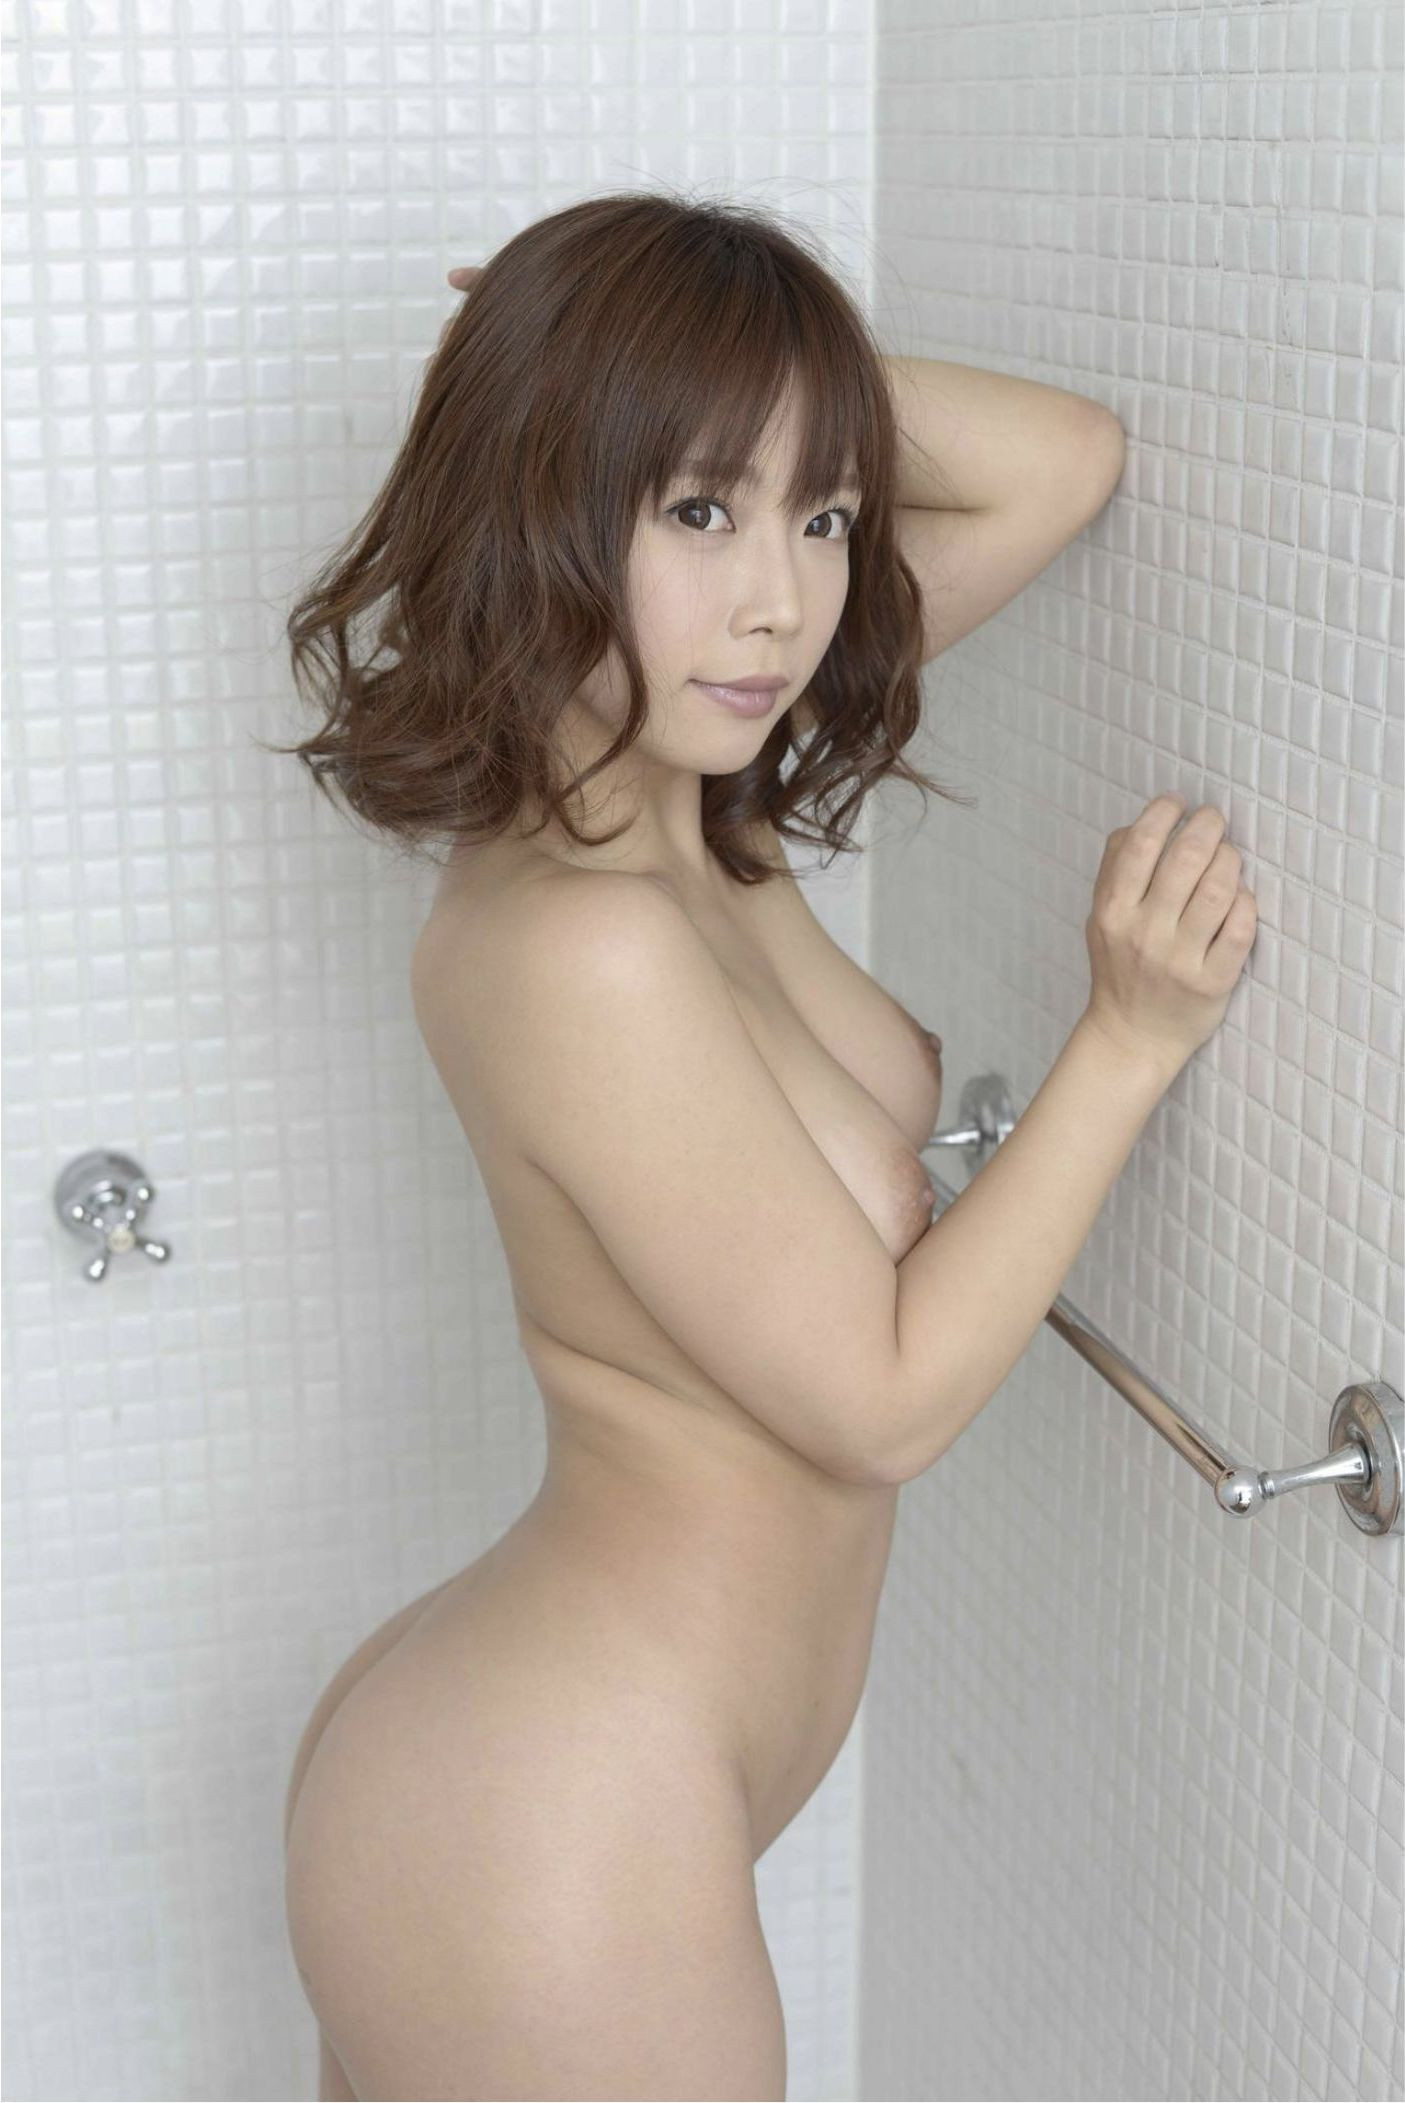 SOFT ON DEMAND GRAVURE COLLECTION 紗倉まな02 photo 068